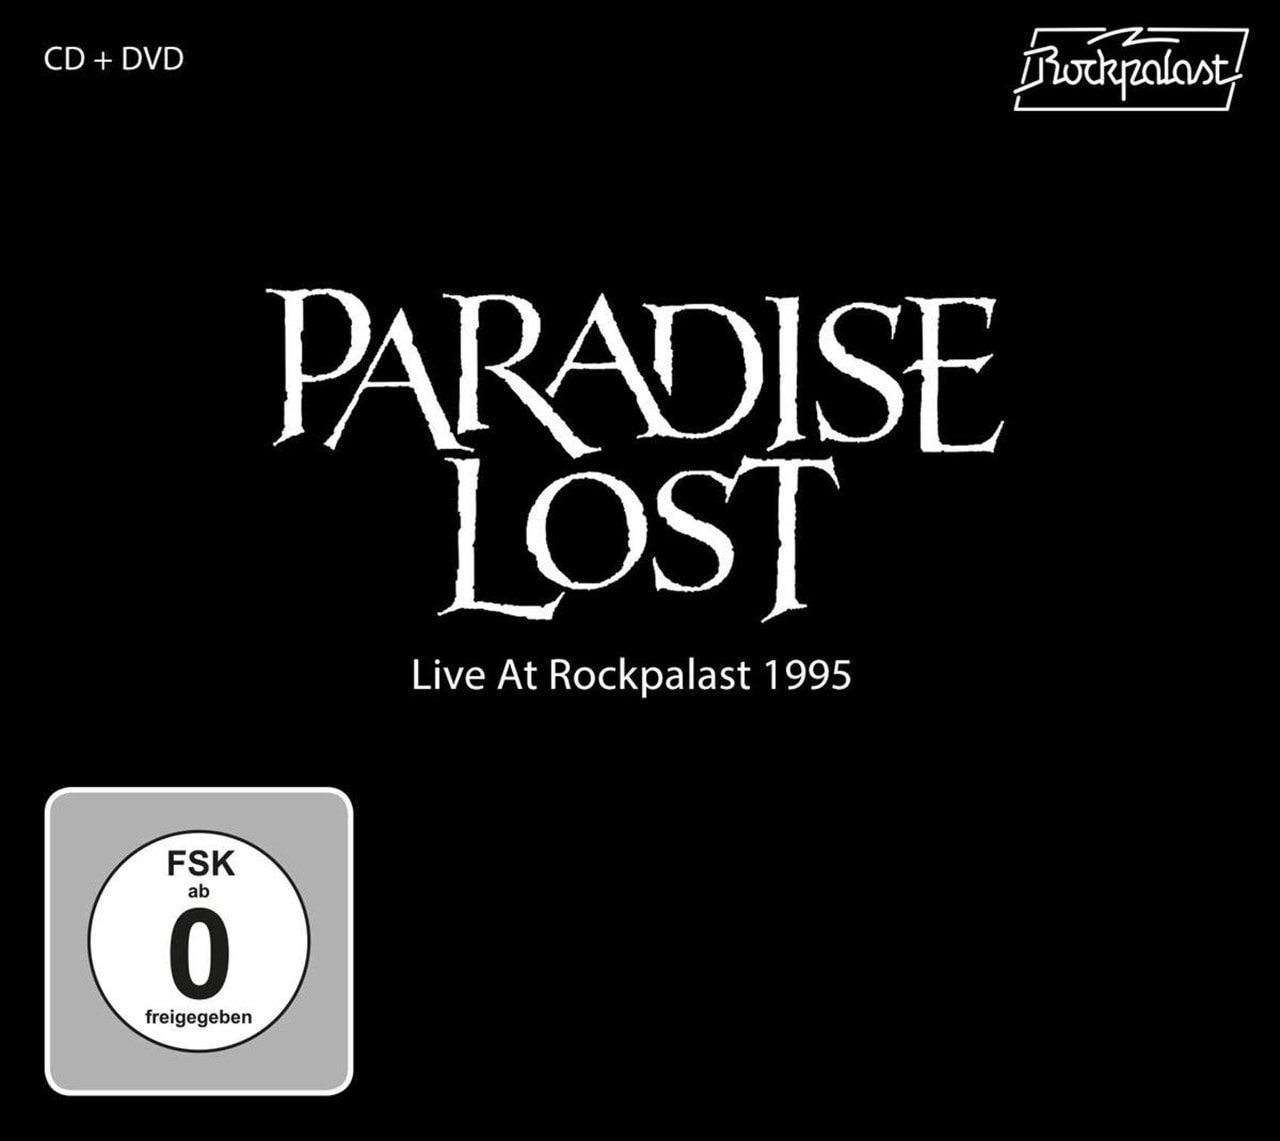 Live at Rockpalast 1995 - 1